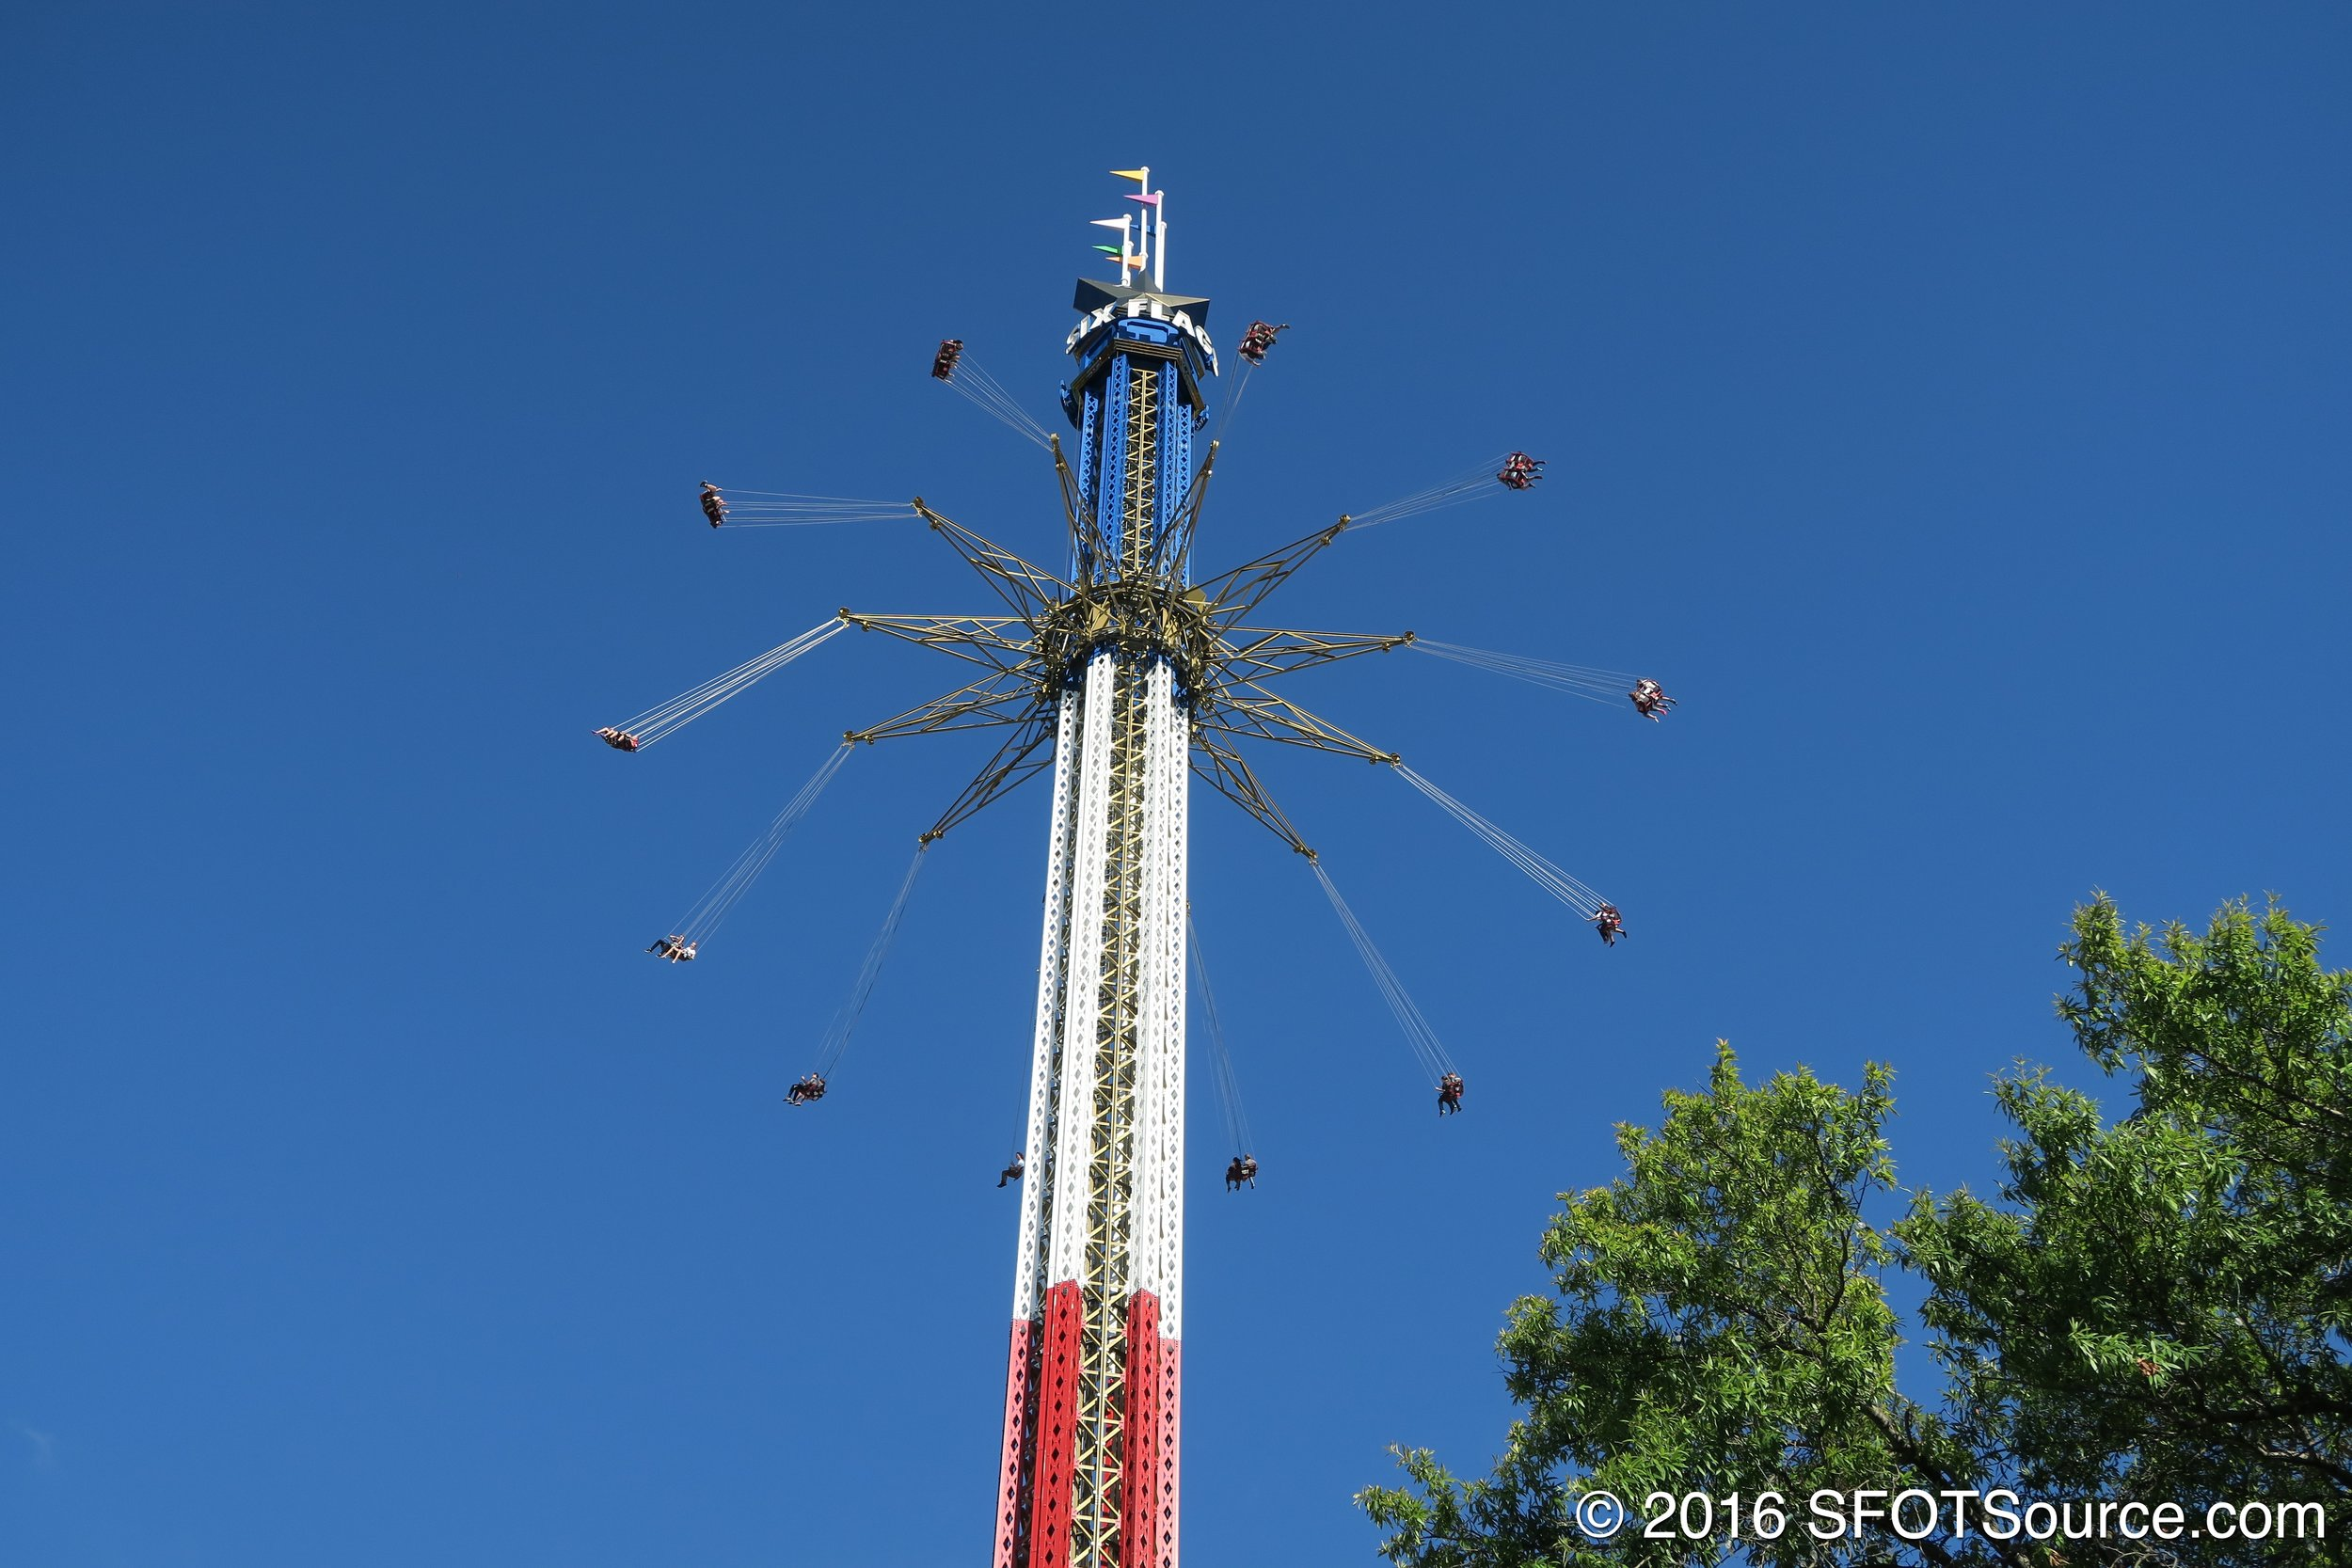 The ride stands at 400 feet tall.